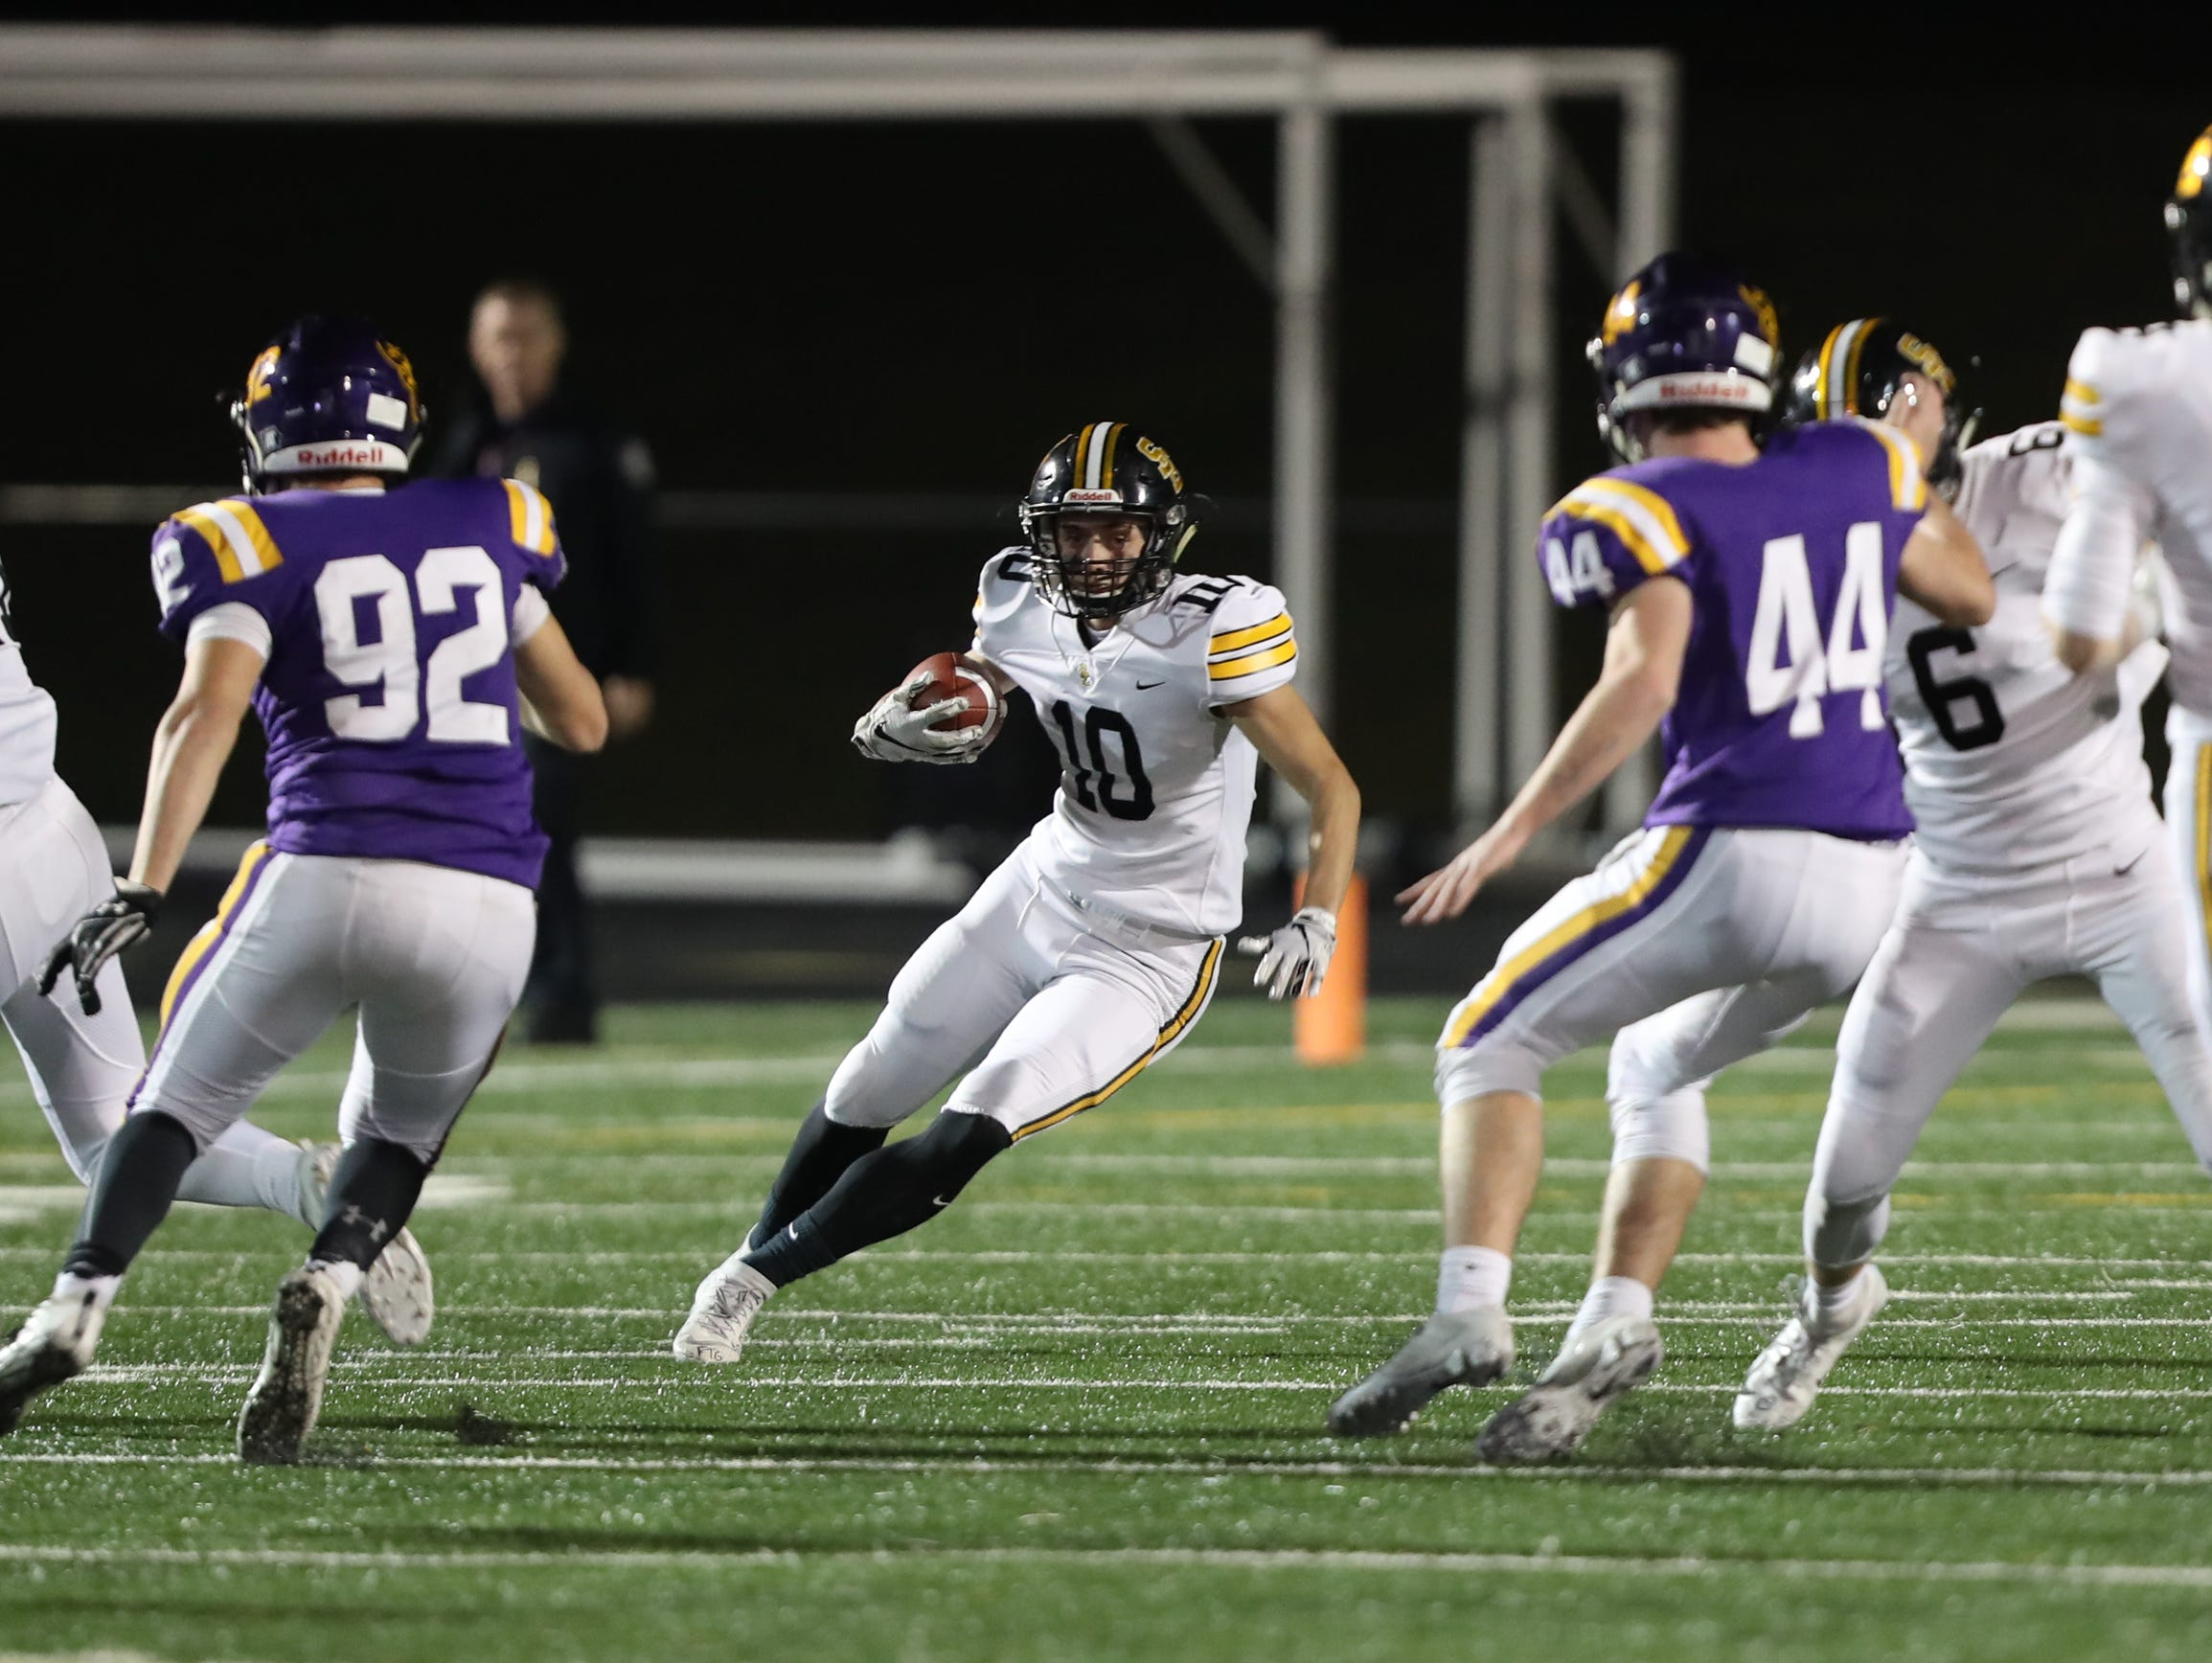 Nov 2, 2018; Johnston, IA, USA; Southeast Polk Rams Mason Fairchild (10) finds some running room against the Johnston Dragons at Johnston Stadium. The Rams beat the Dragons 21-7.